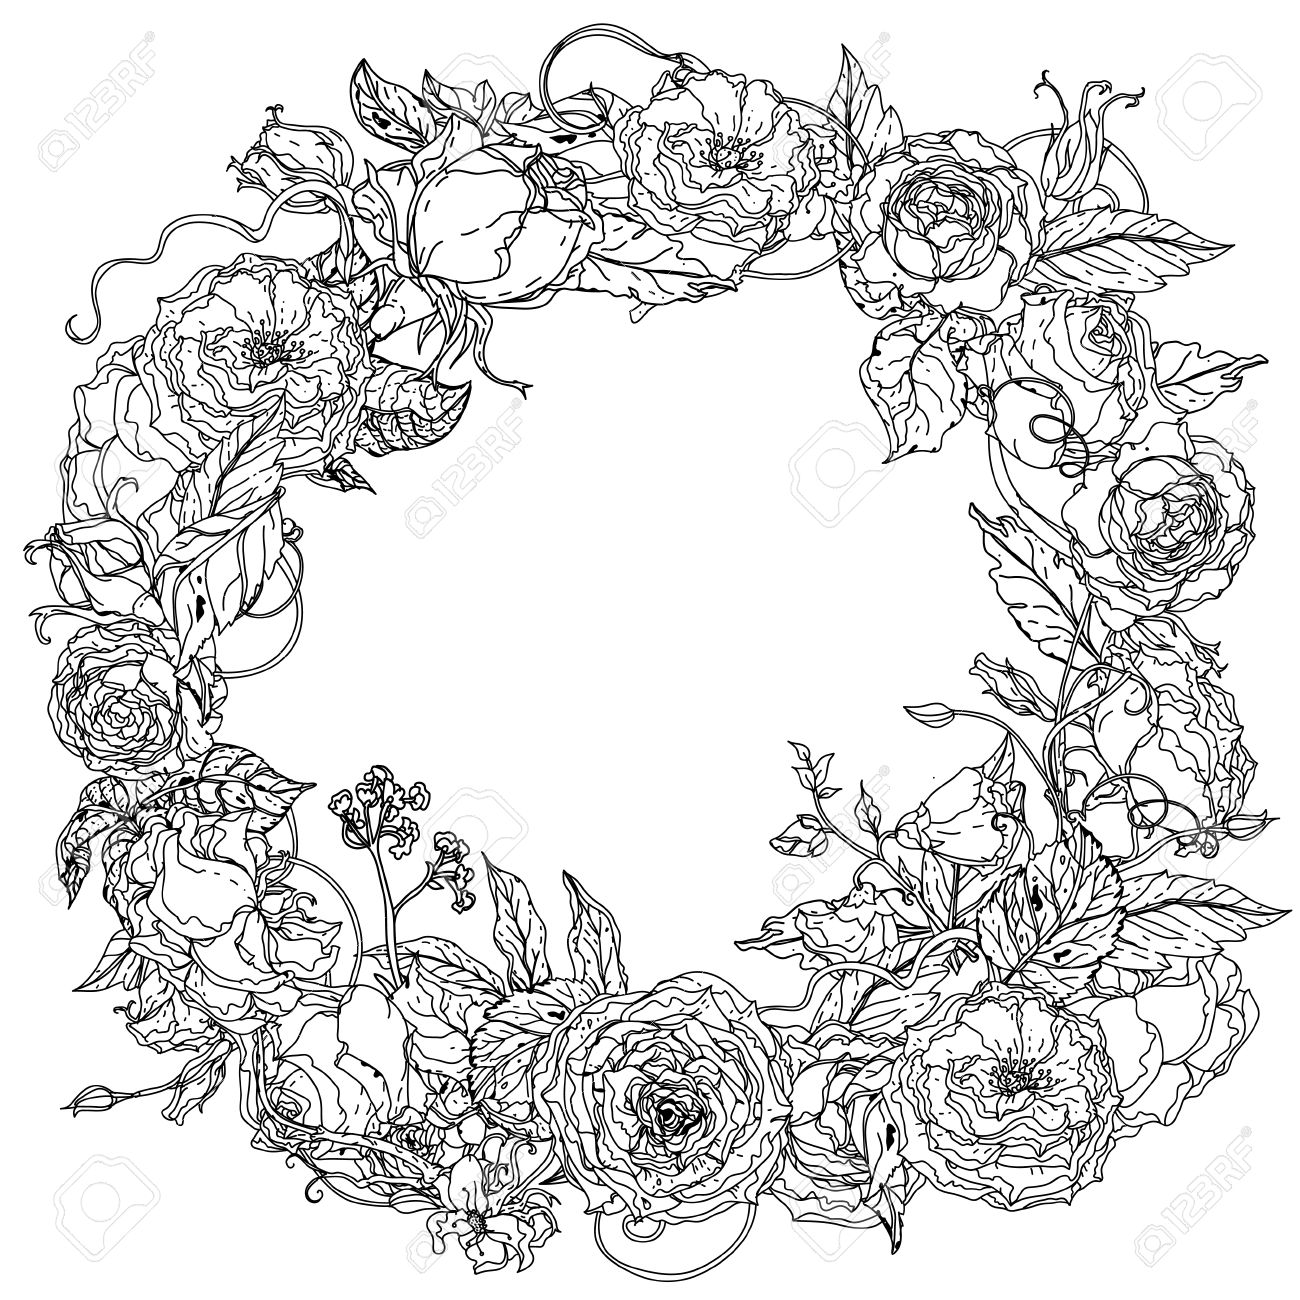 Luxury Flowers Bouquet In Shape Of Mandala For Adult Coloring ...